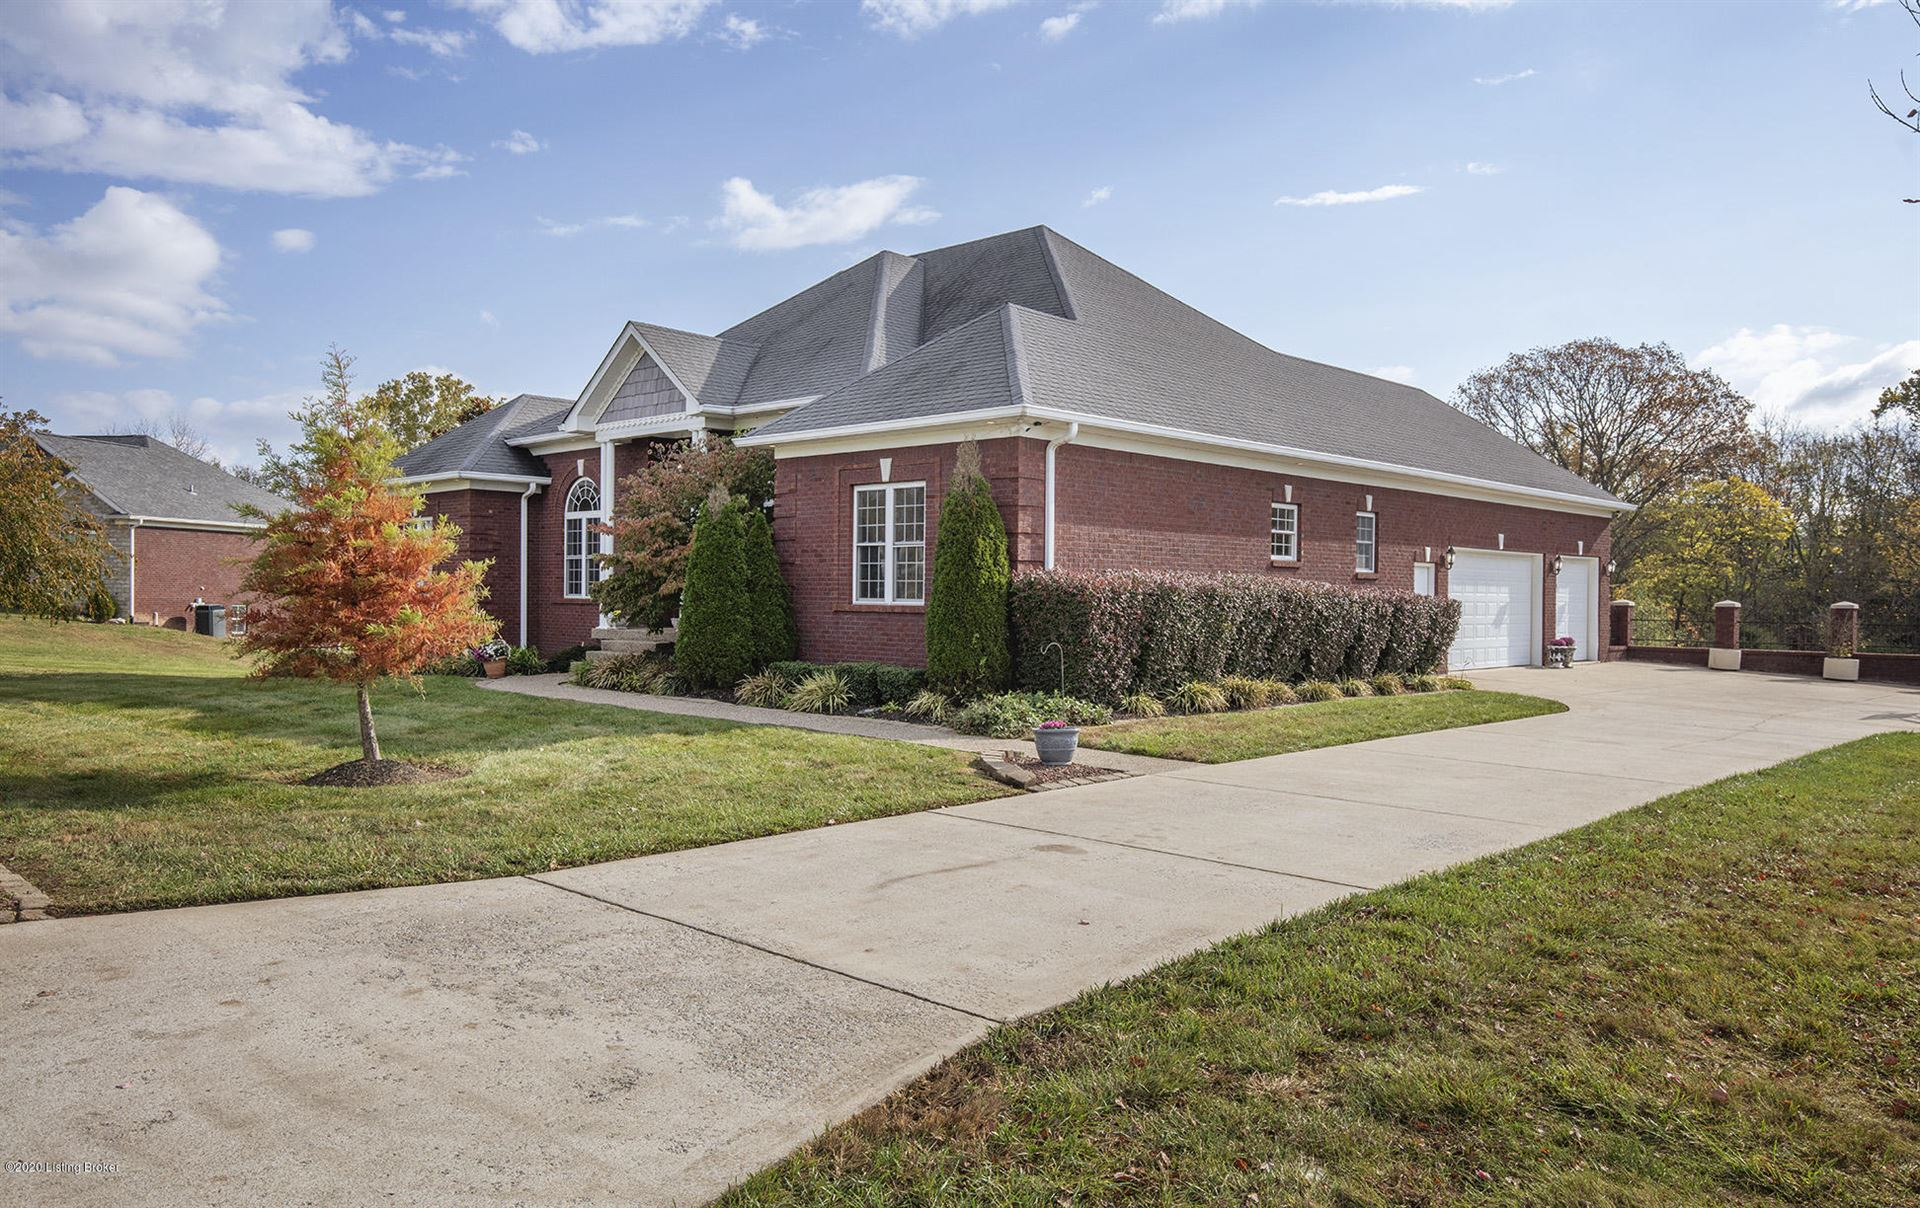 Photo of 565 Peach Orchard Cir, Fisherville, KY 40023 (MLS # 1573162)